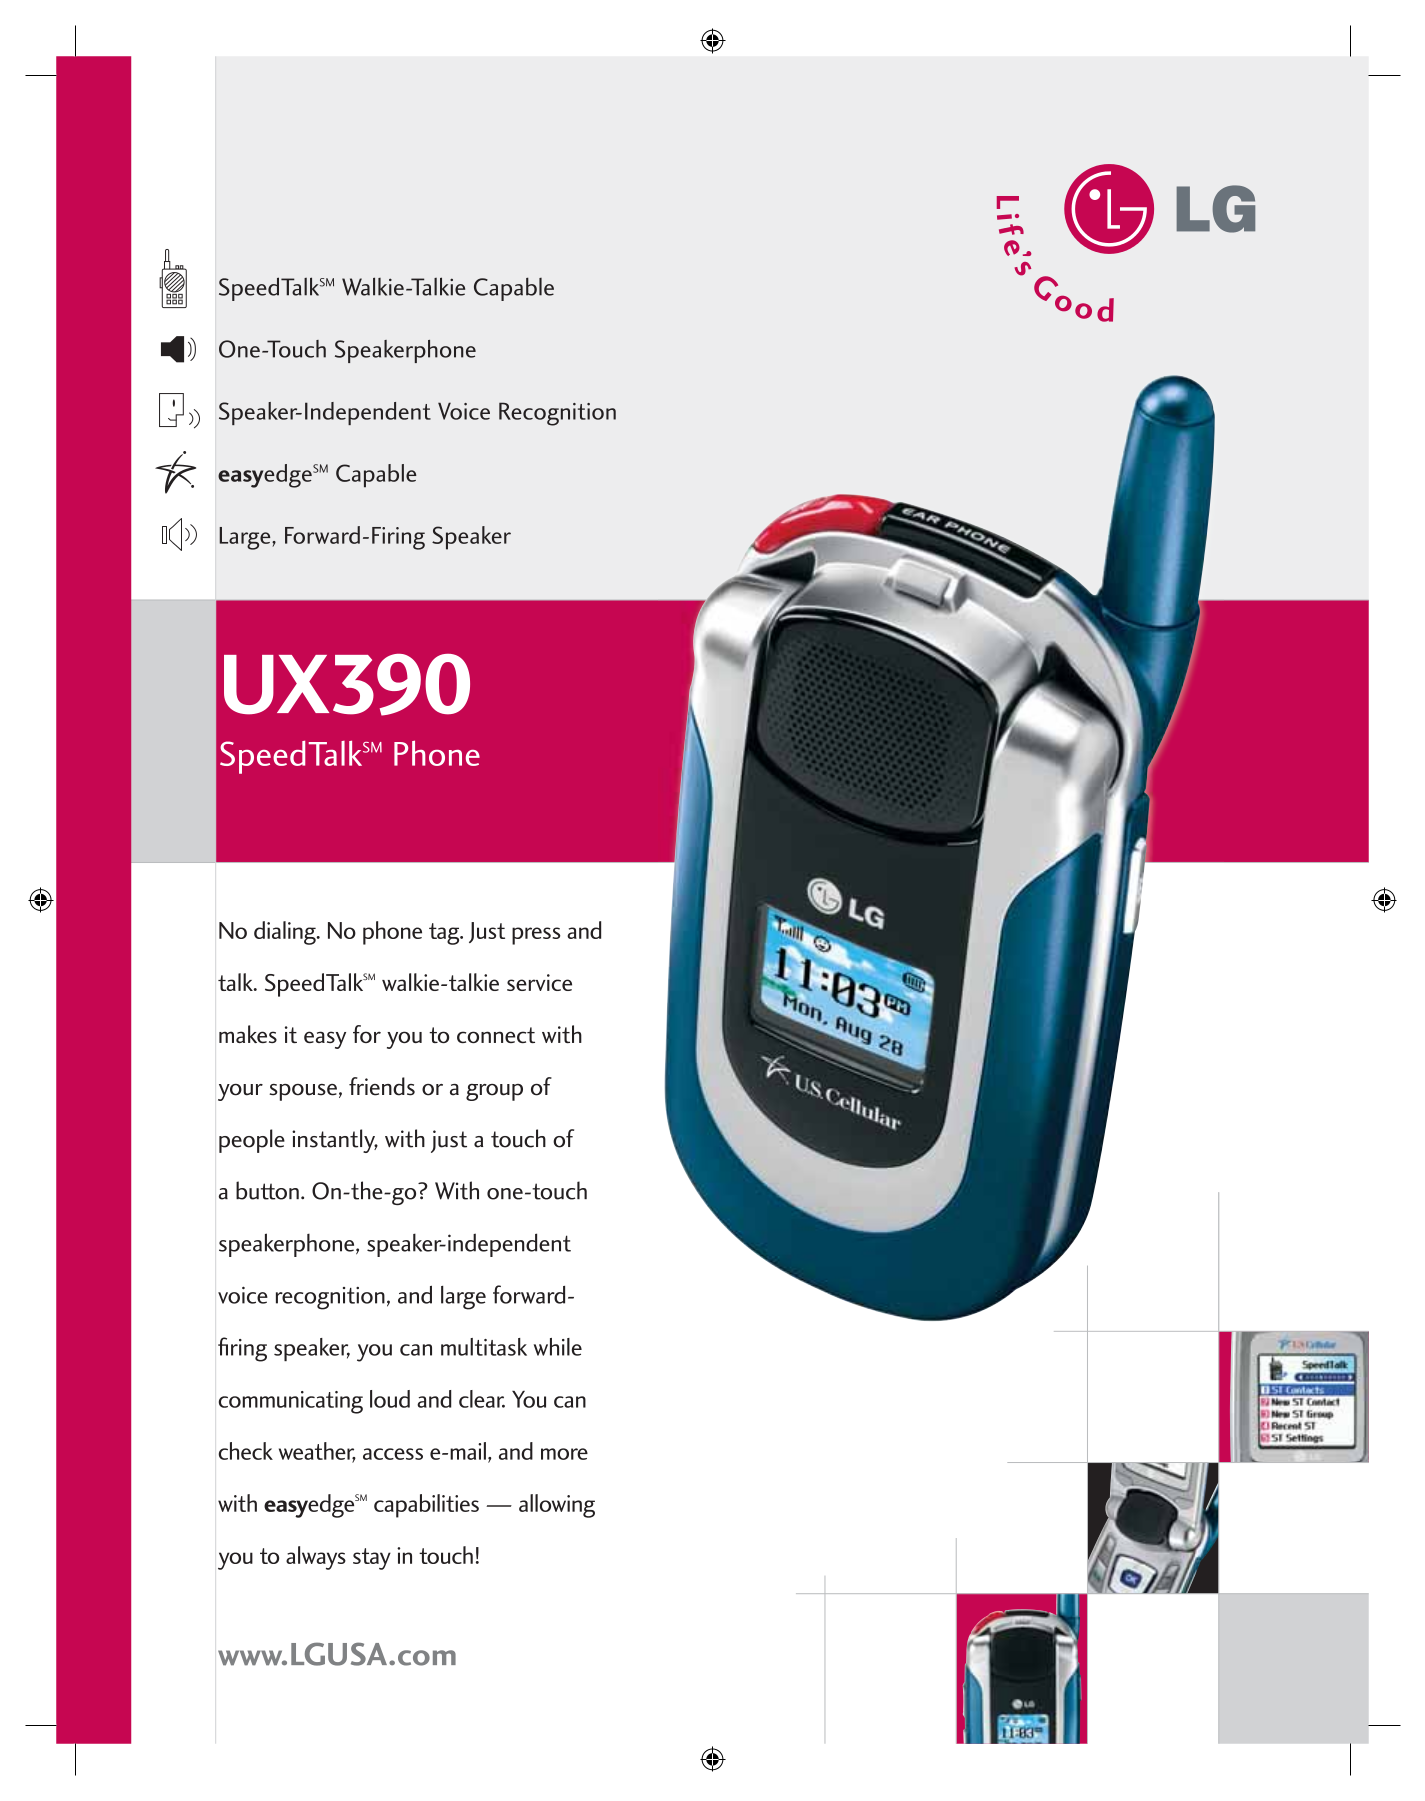 pdf for LG Cell Phone UX390 manual